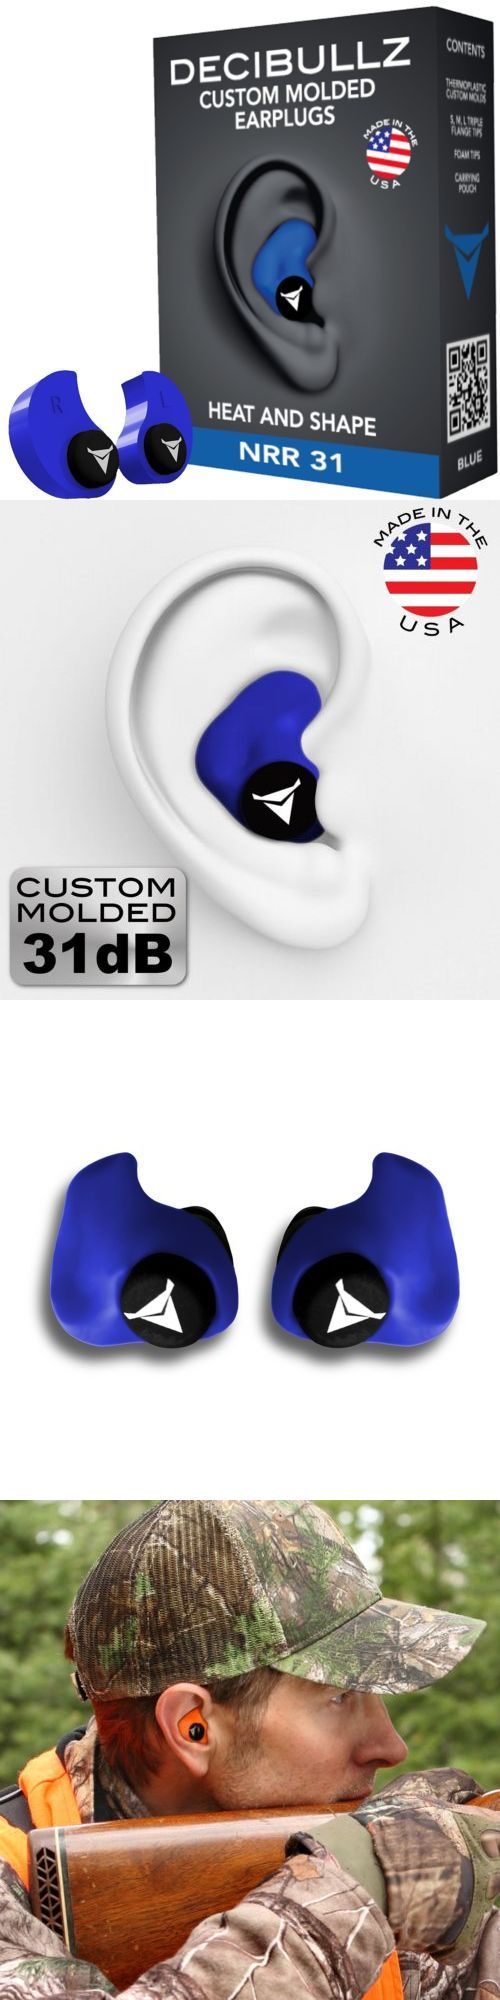 Hearing Protection 73942: Custom Molded Earplugs Hearing Shooting Noise Protection Munite Fit Ear Plug Set -> BUY IT NOW ONLY: $35.99 on eBay!